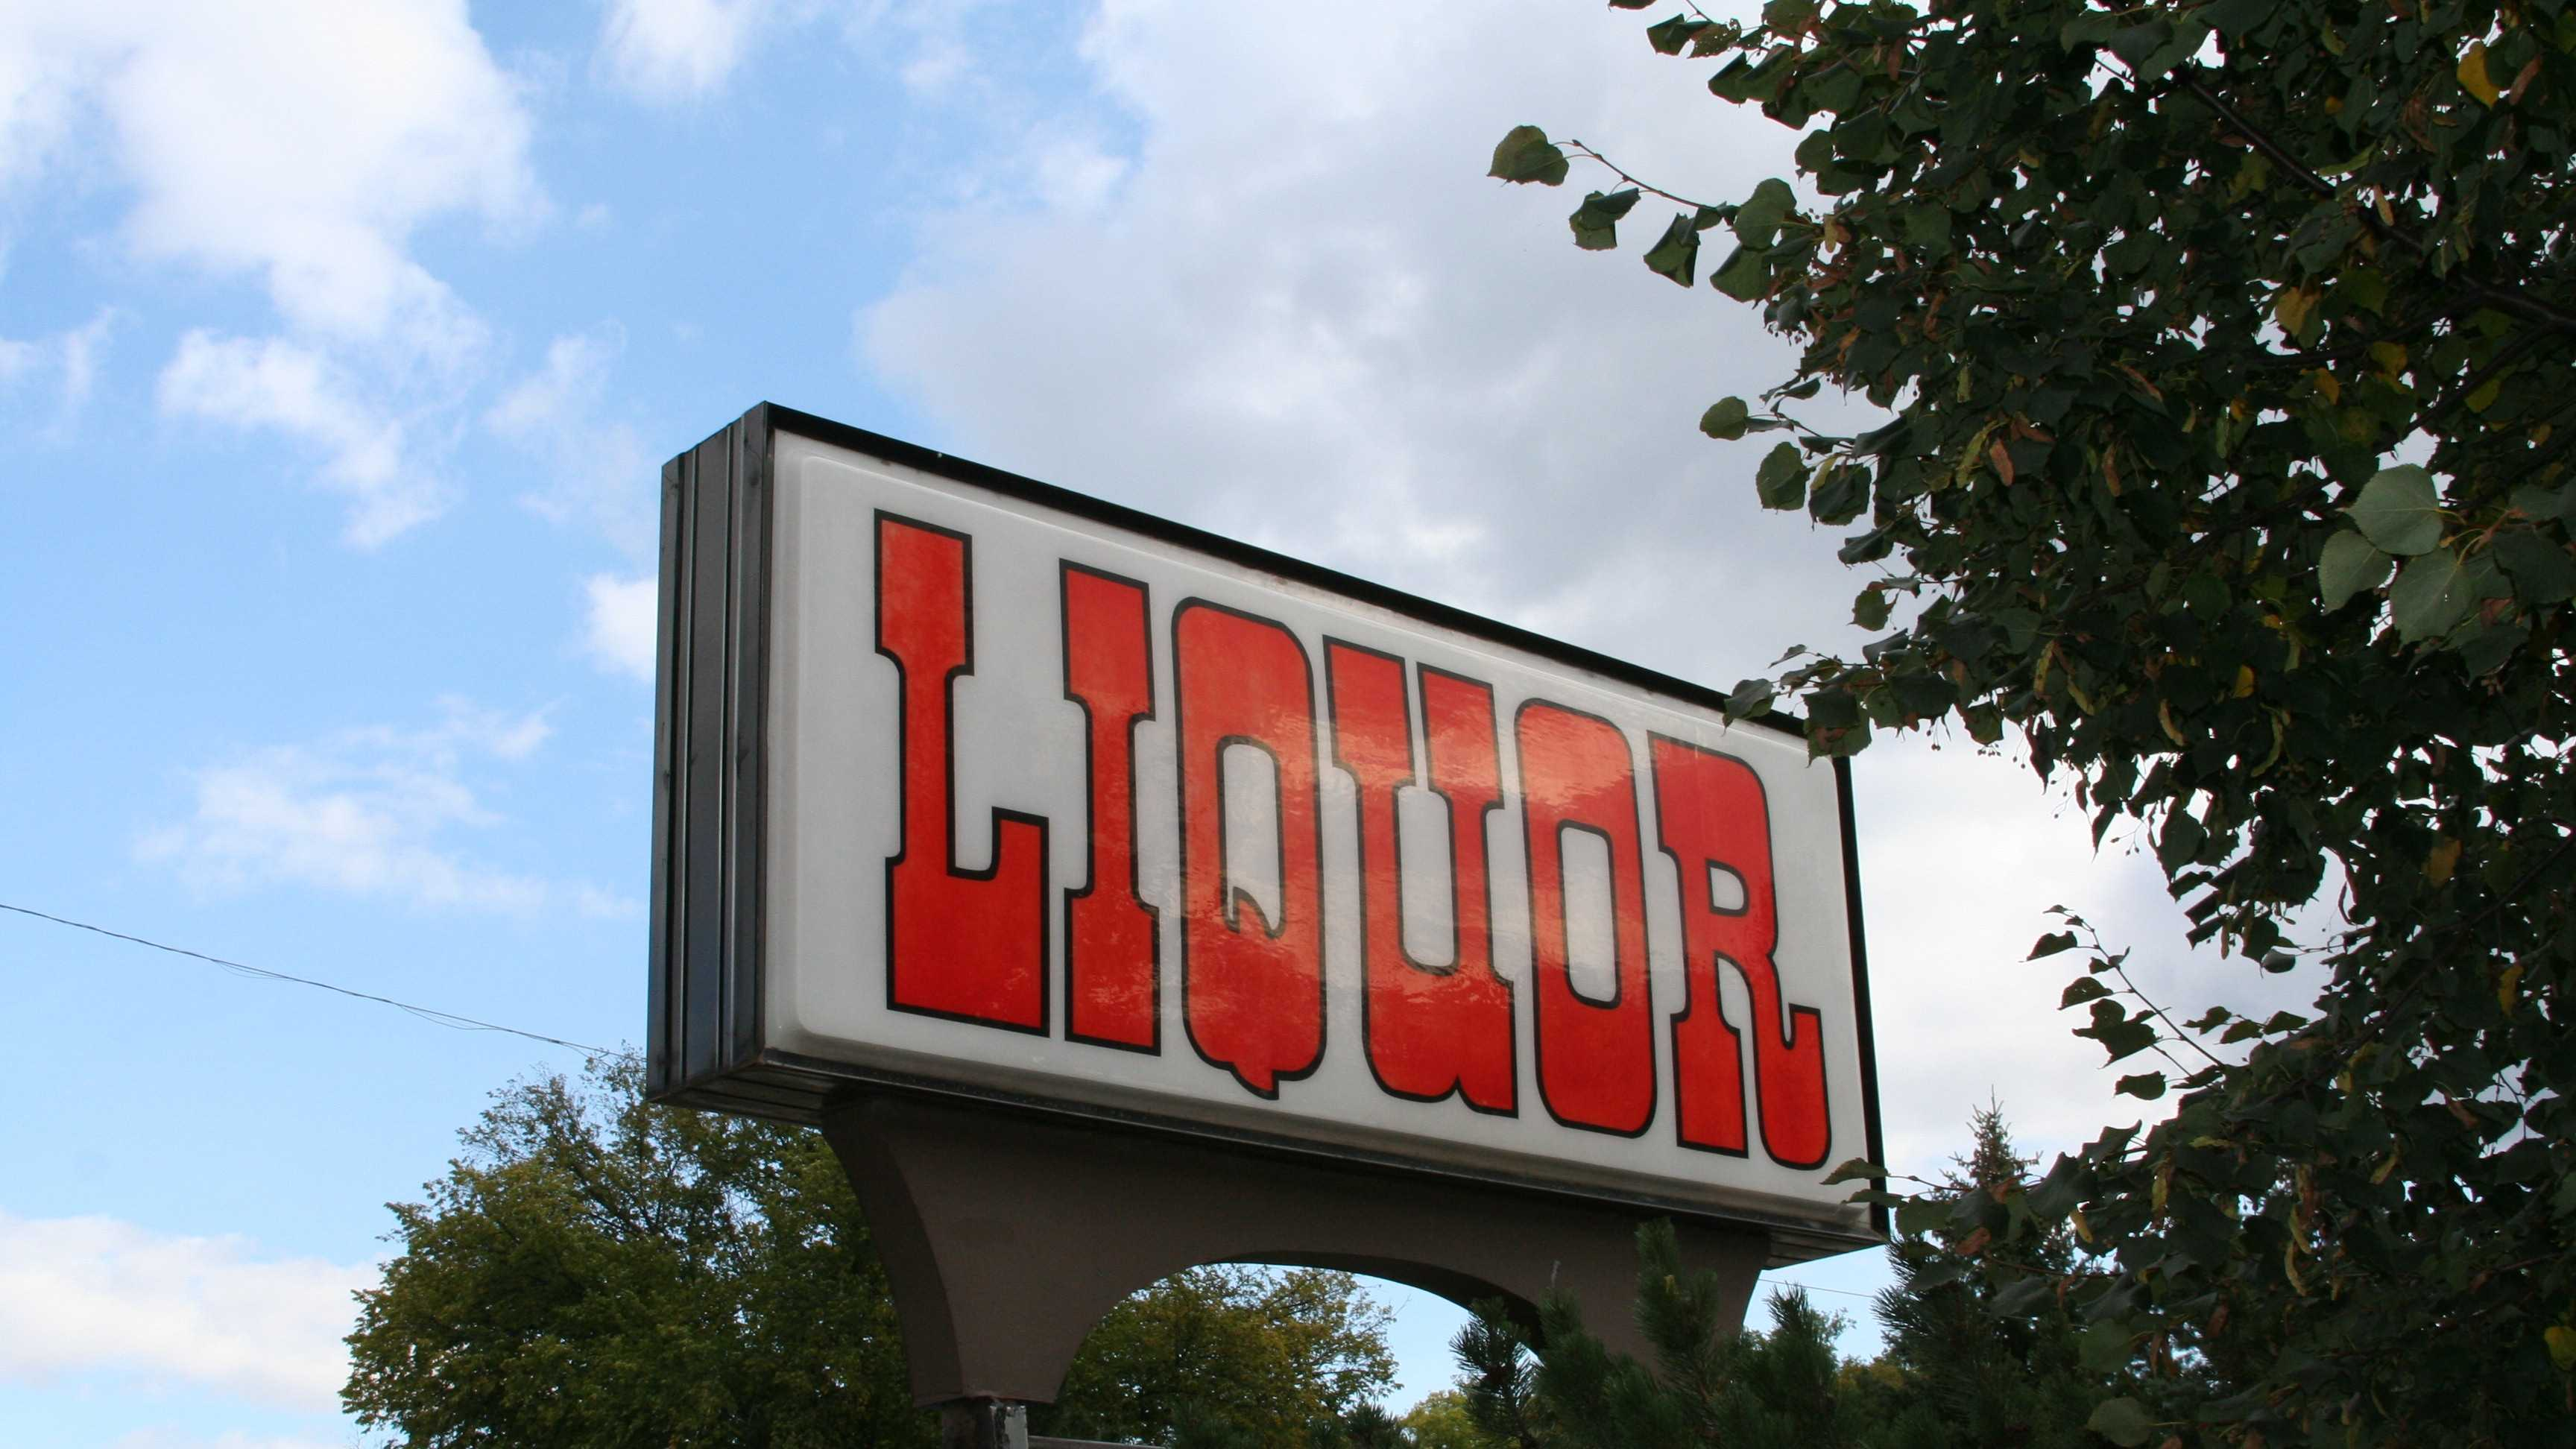 In Indiana, it's illegal for a liquor store to sell cold soft drinks.